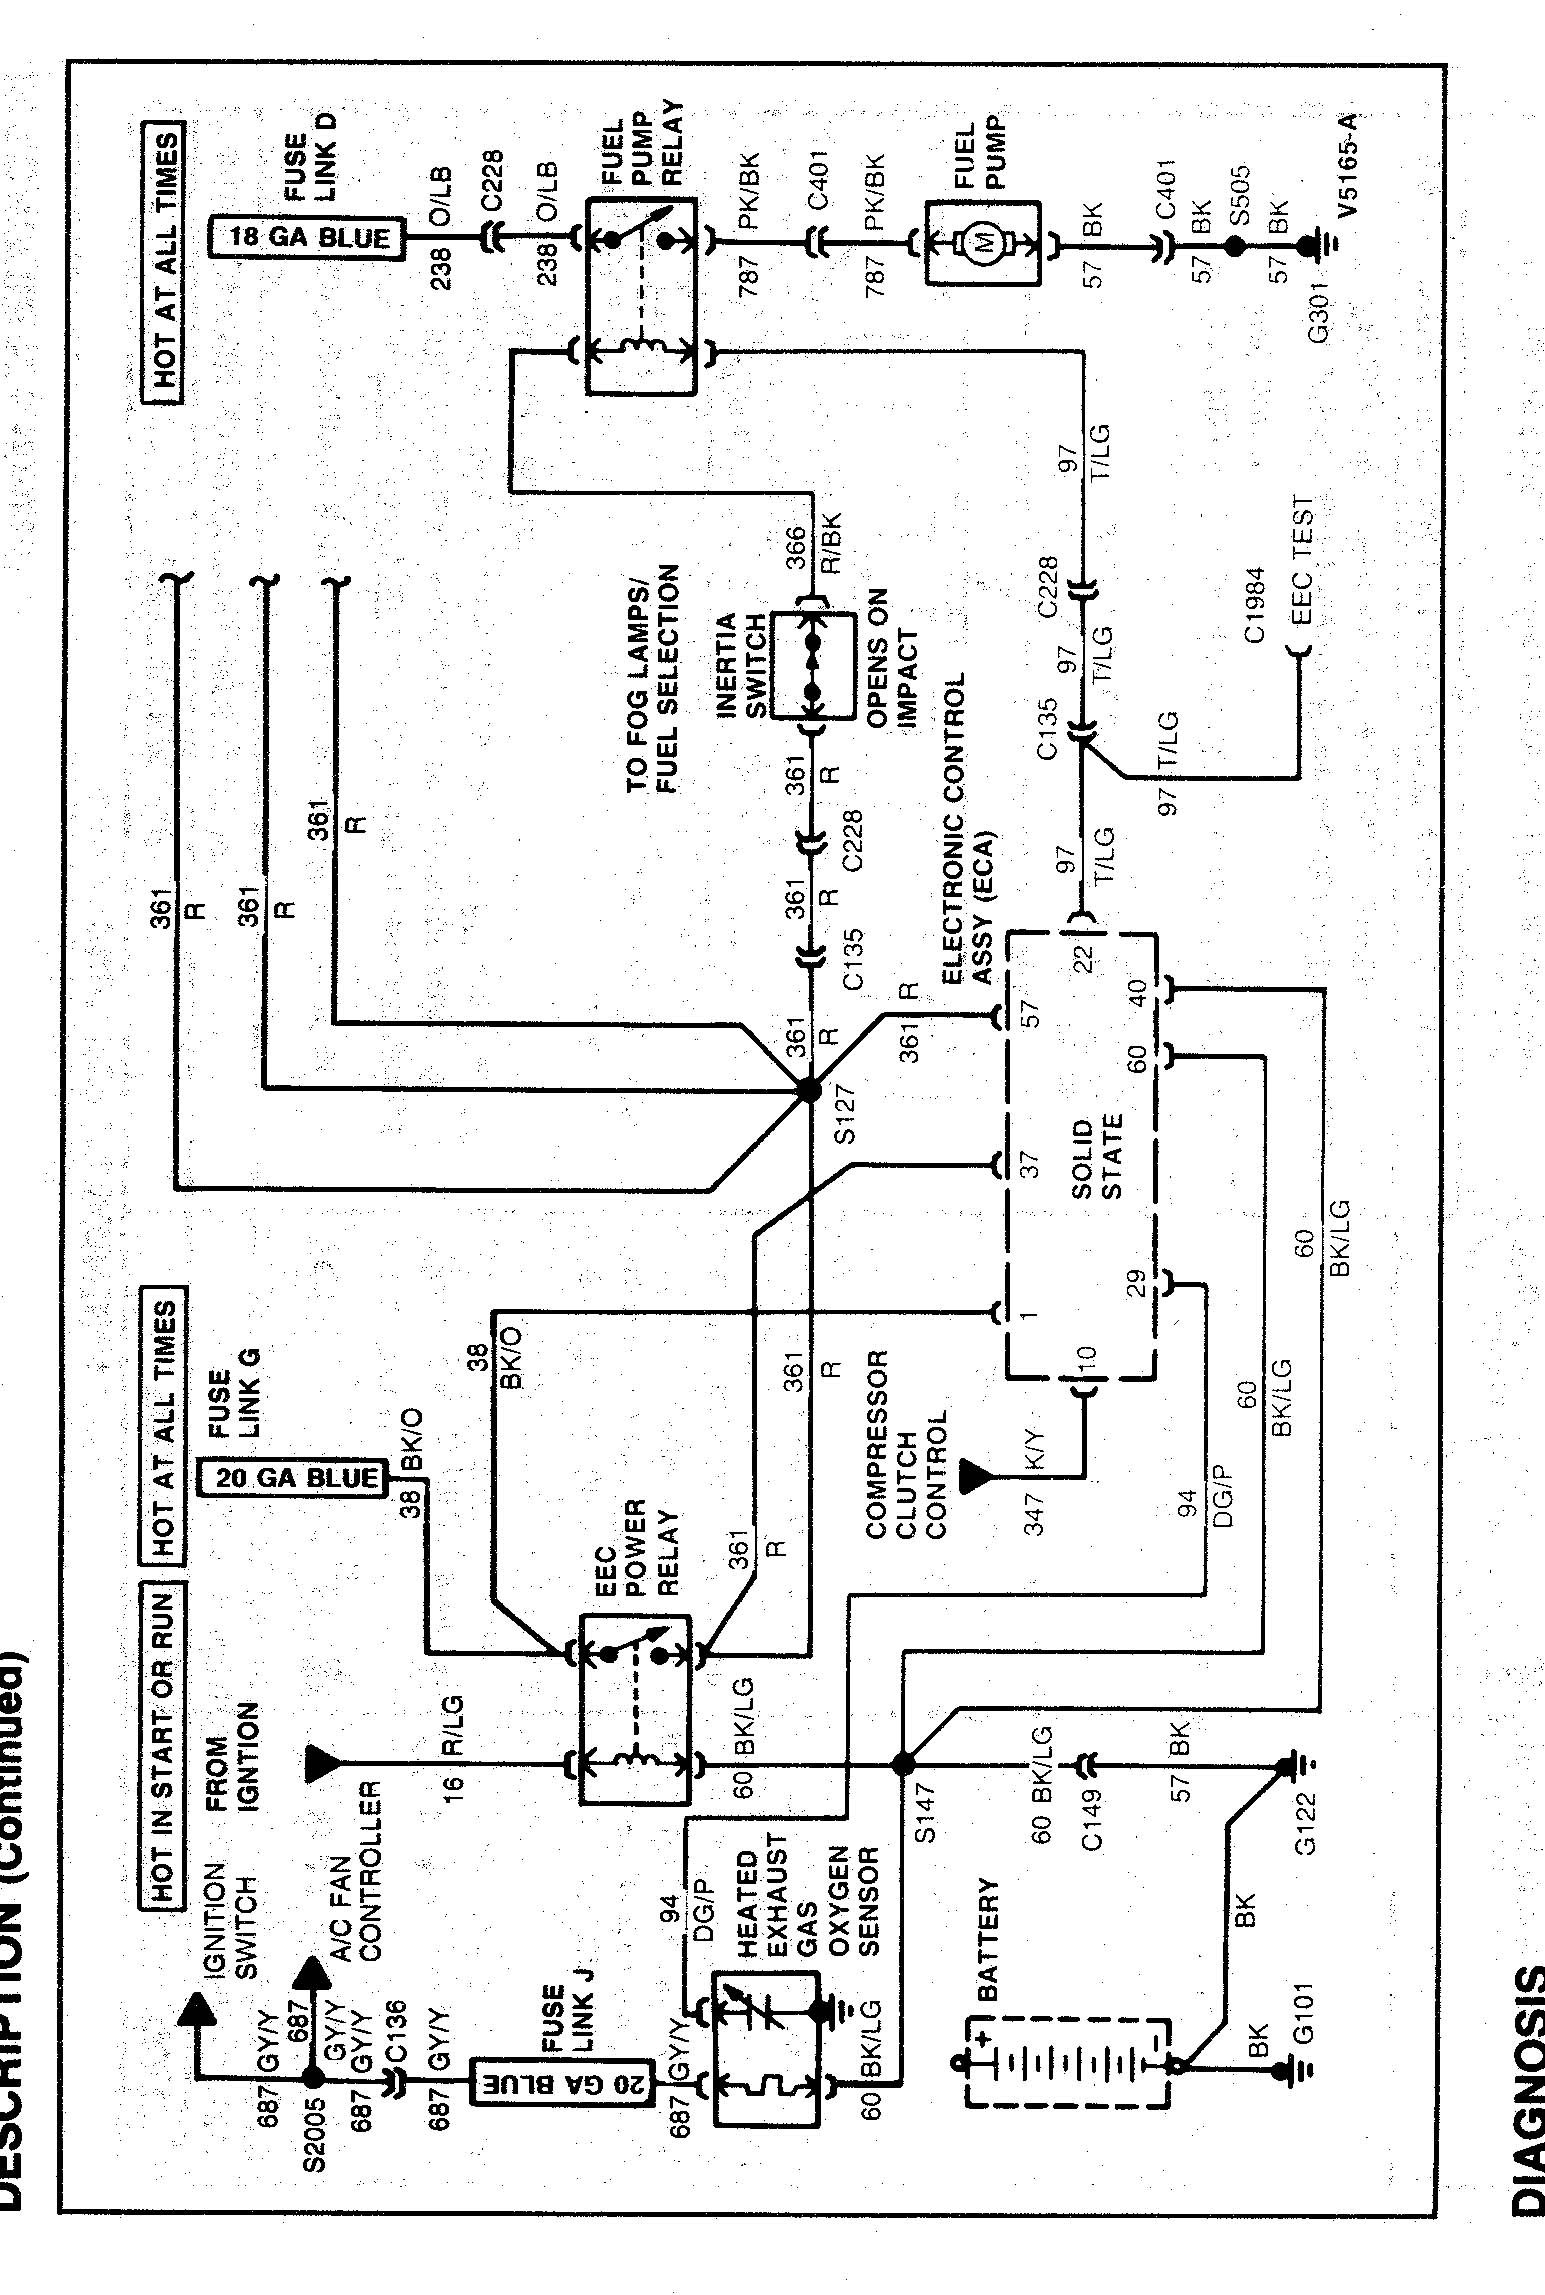 hight resolution of 1928d1051592166 may electrical fuel pump but mustangfuelelectricaldiagram2 100 mustang horn wiring diagram 63 impala